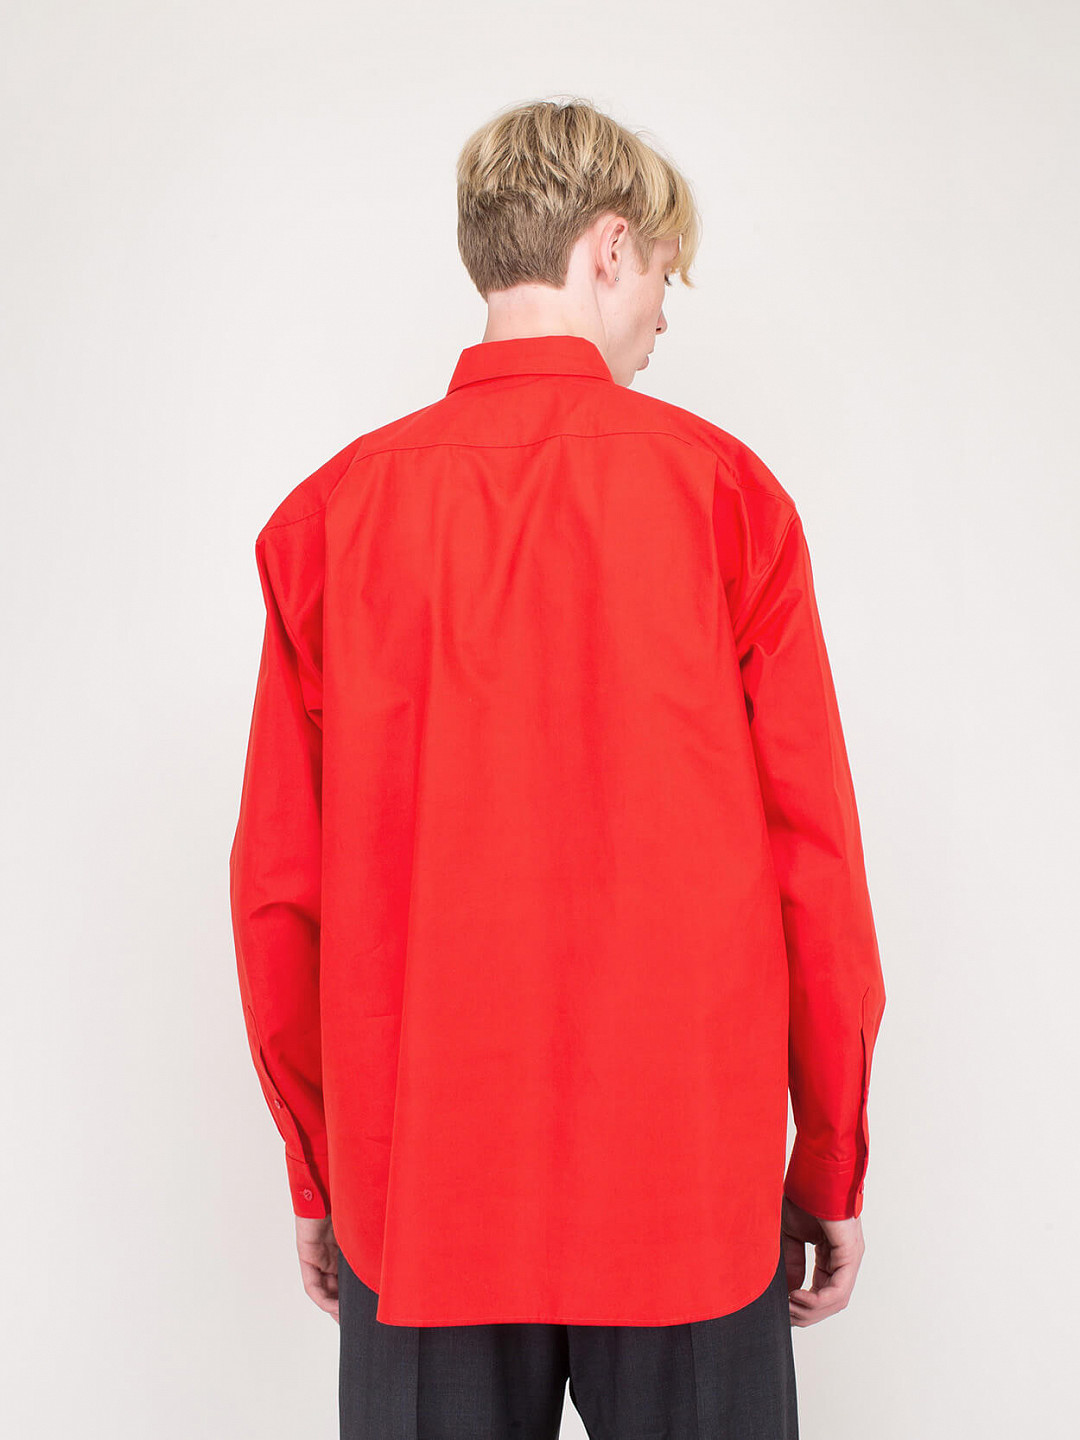 Square Shoulder Shirt red